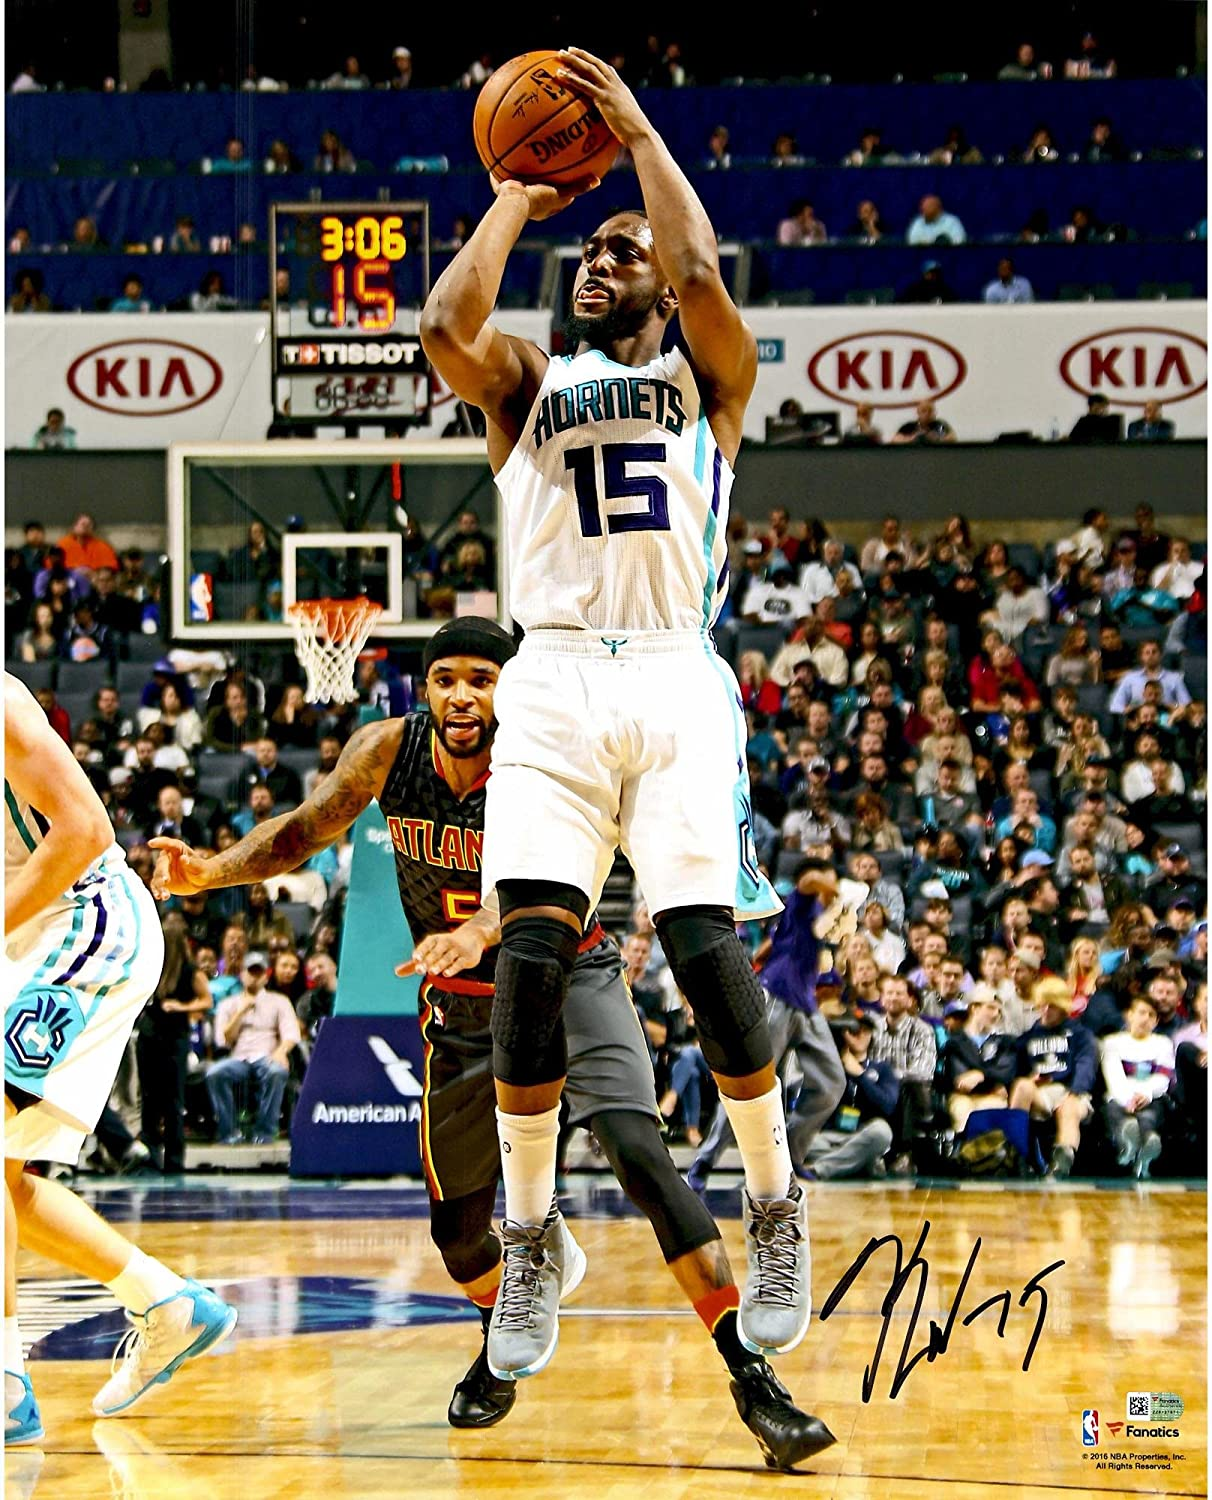 Kemba Walker Charlotte Hornets Autographed 16' x 20' Shooting Photograph - Fanatics Authentic Certified